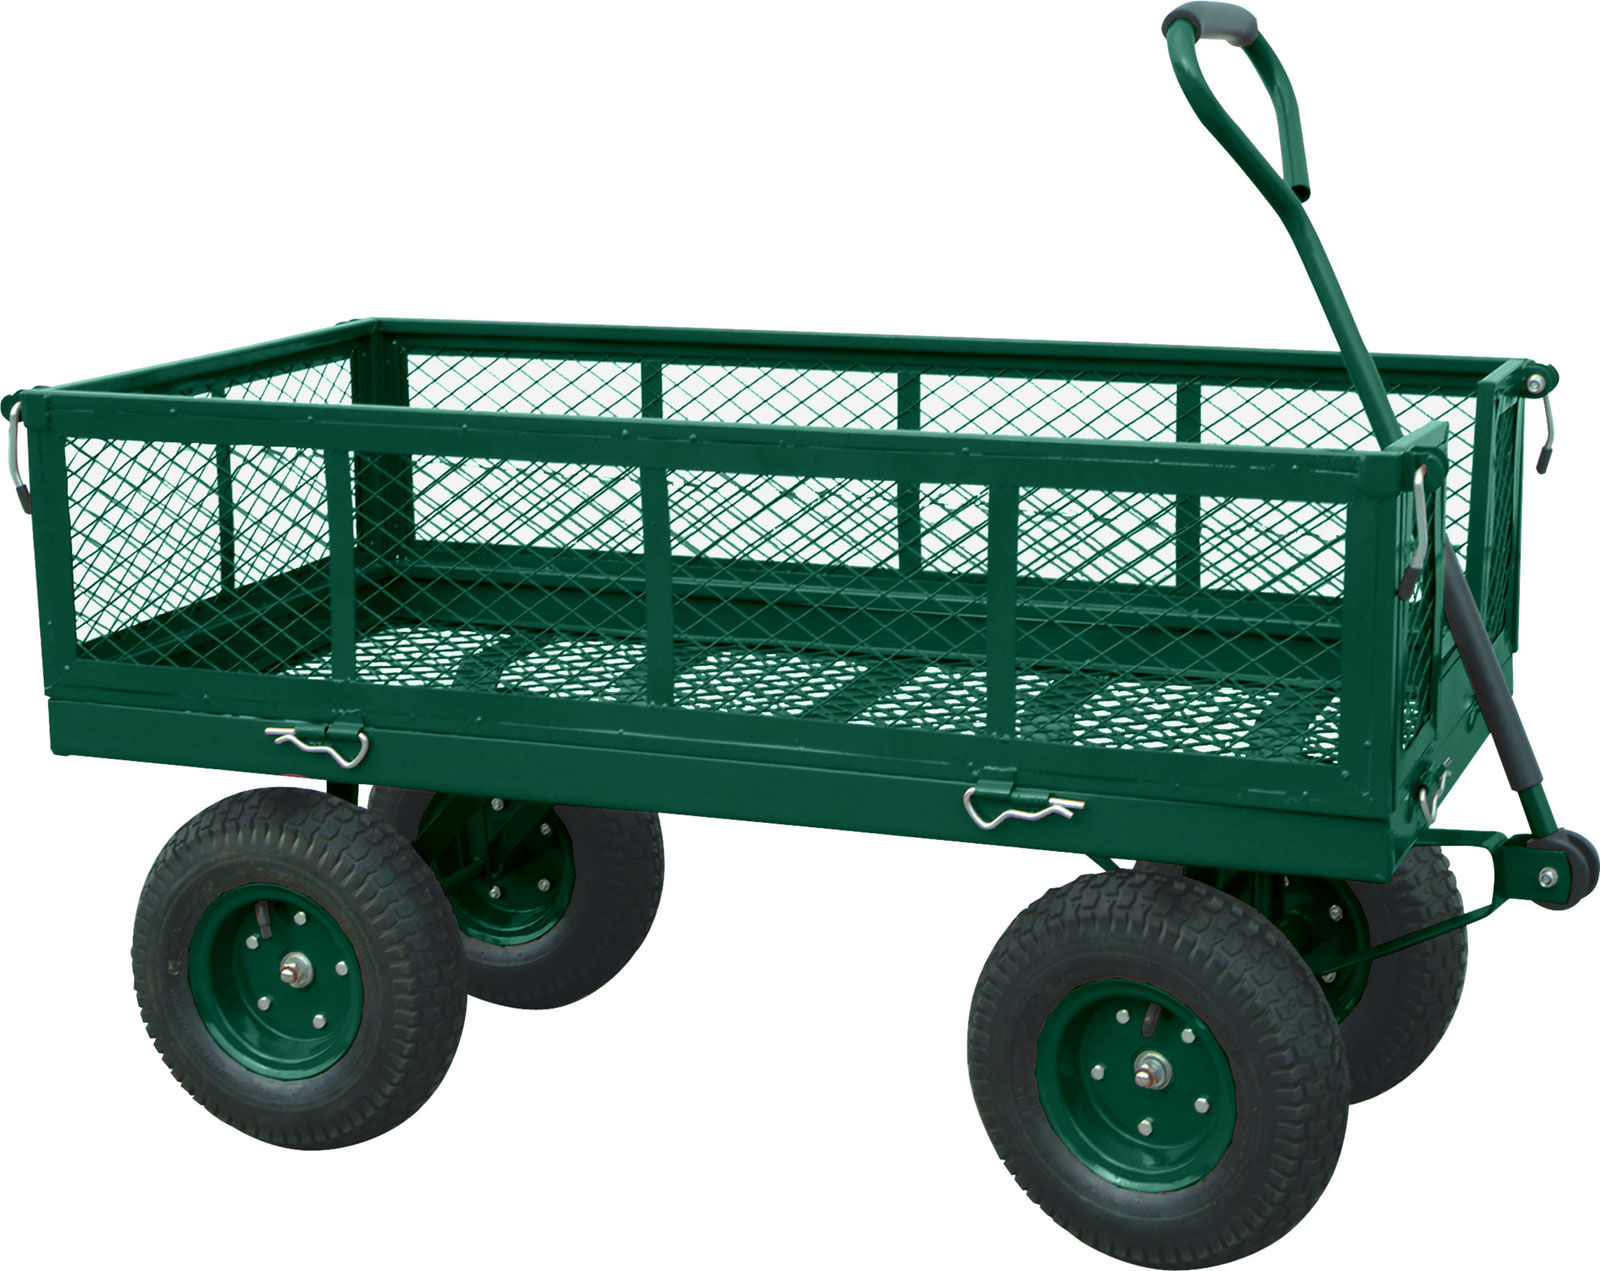 Heavy duty crate wagon in garden wagons Home styles natural designer utility cart